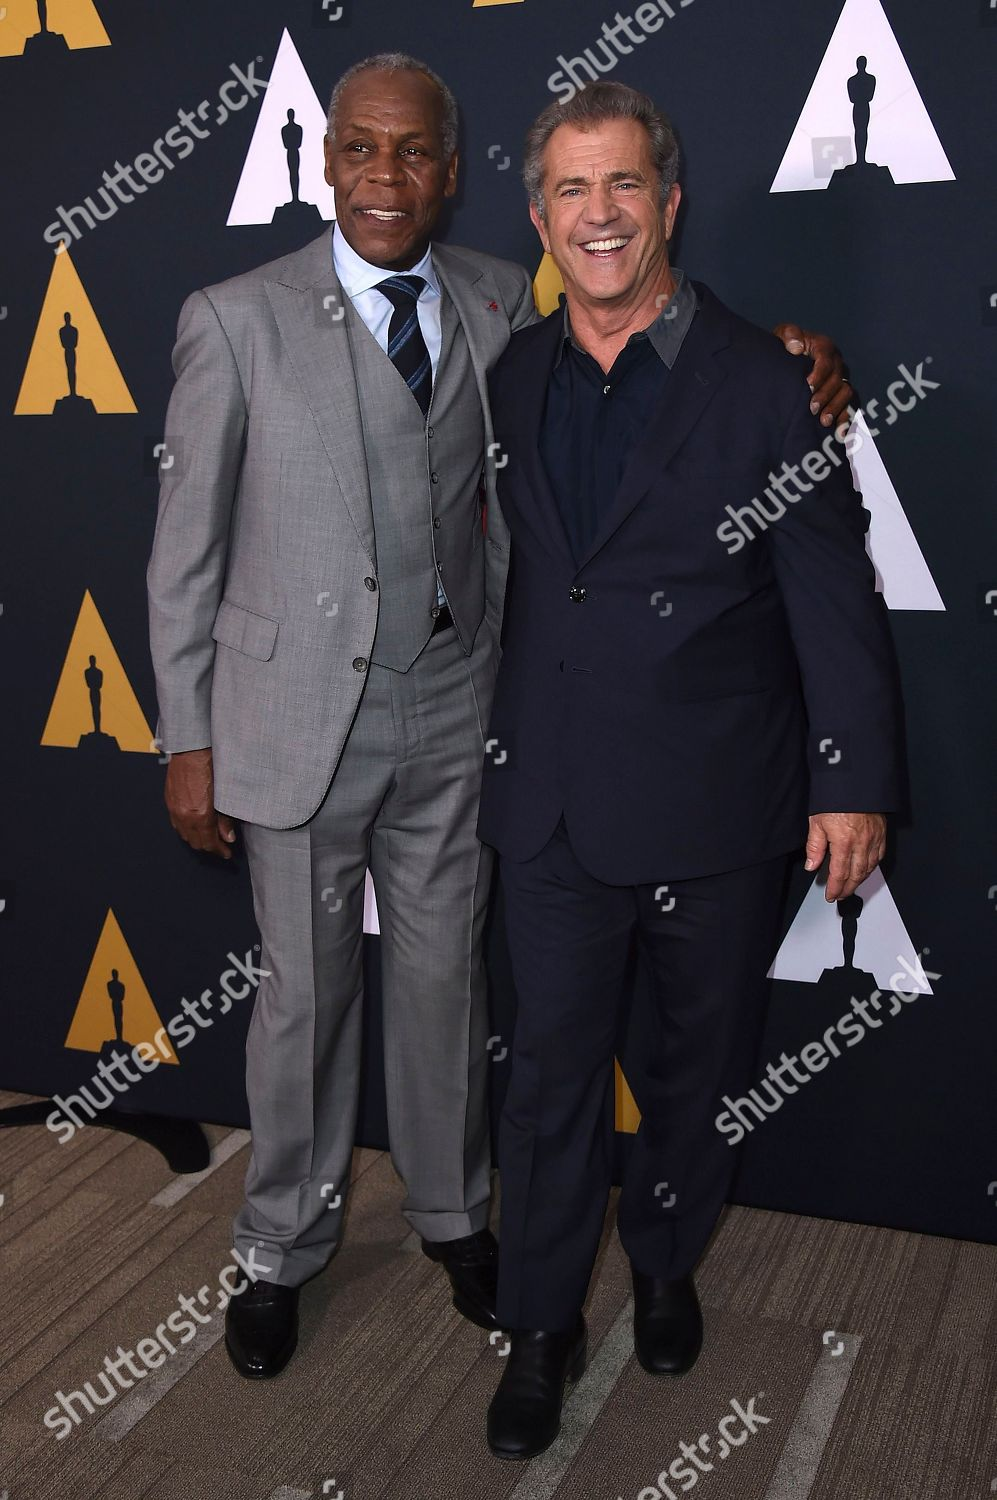 ¿Cuánto mide Danny Glover? Richard-donner-tribute-beverly-hills-usa-shutterstock-editorial-9242661az